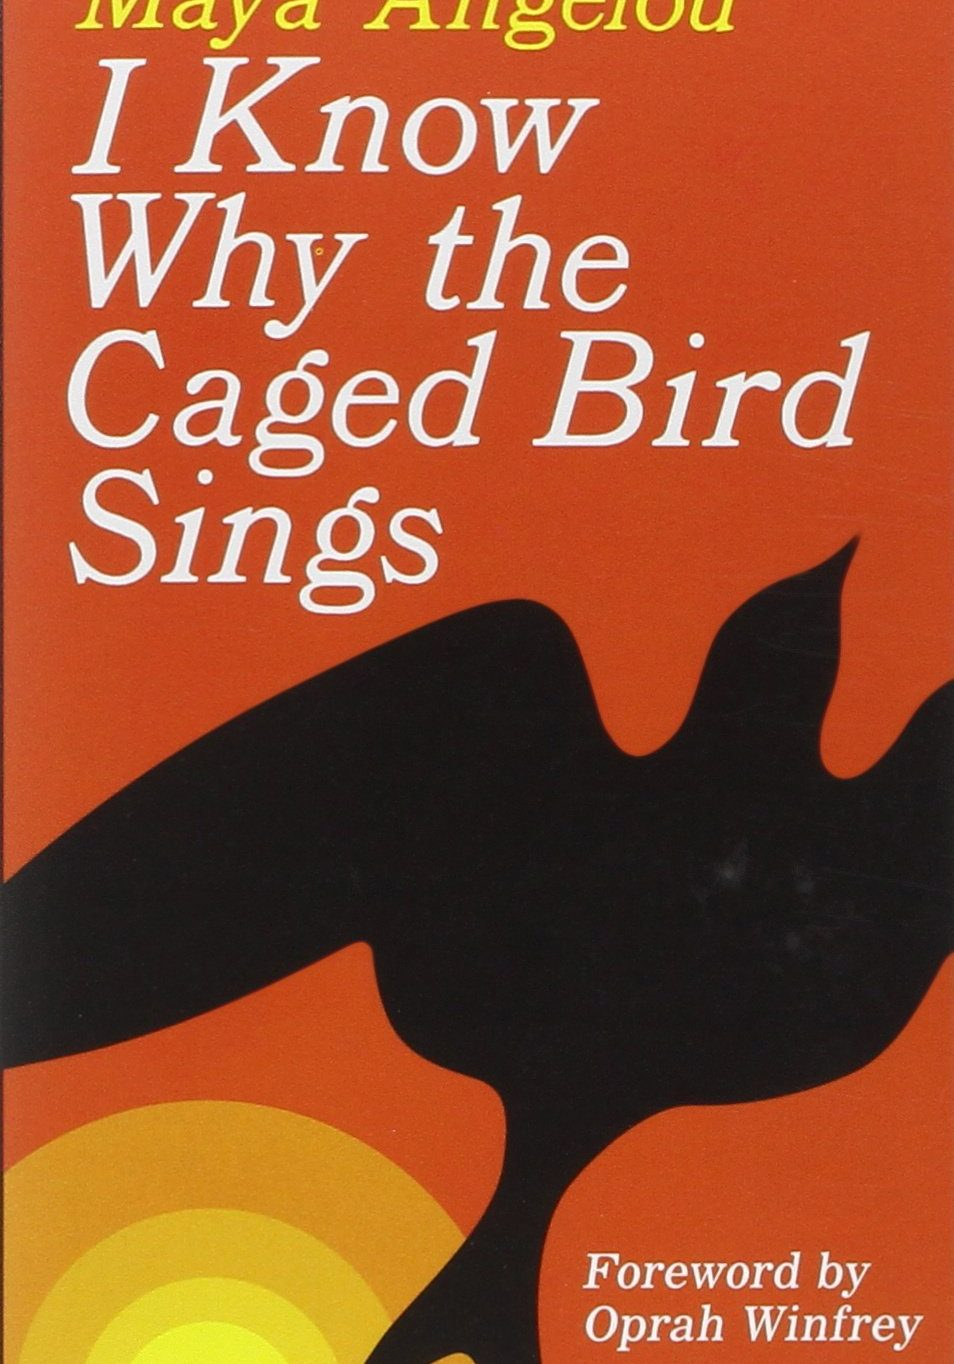 Angelou I know why the caged bird sings